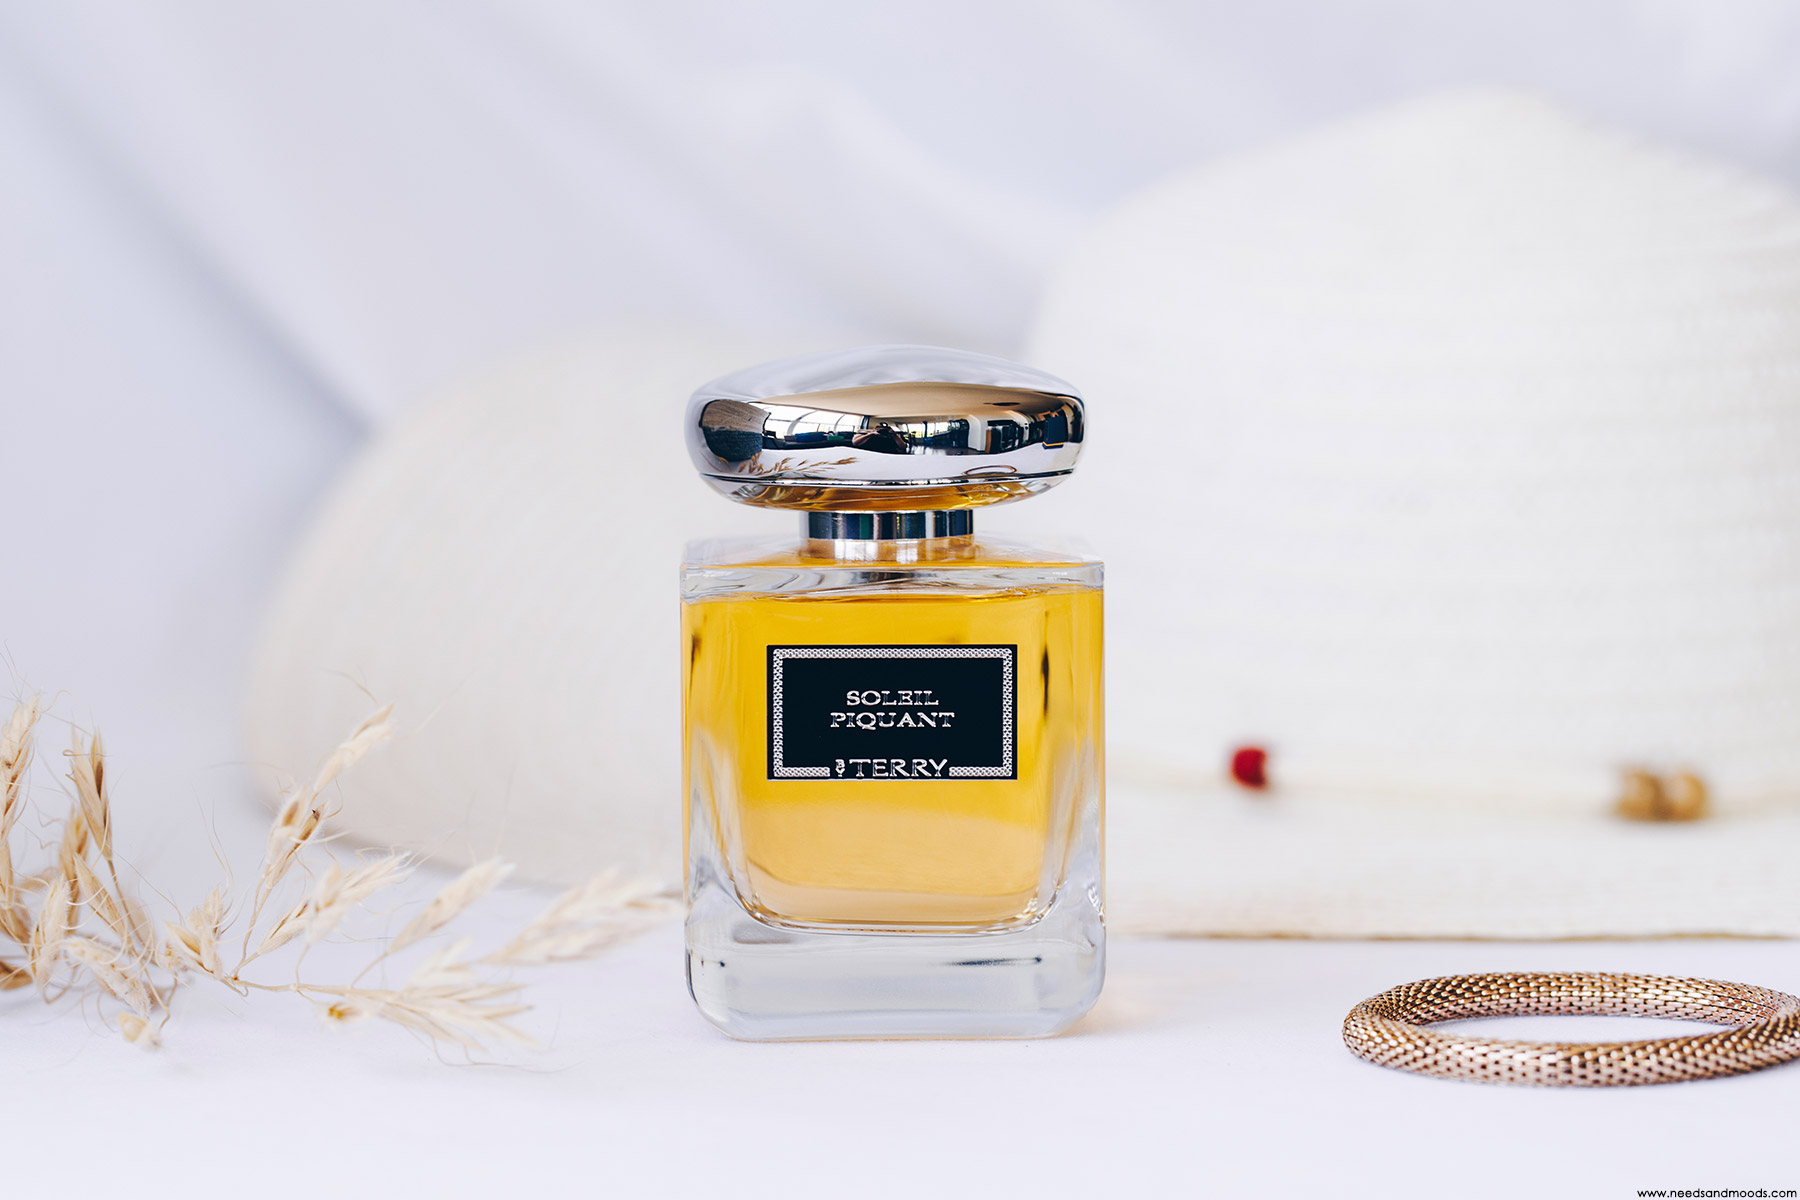 parfum by terry soleil piquant